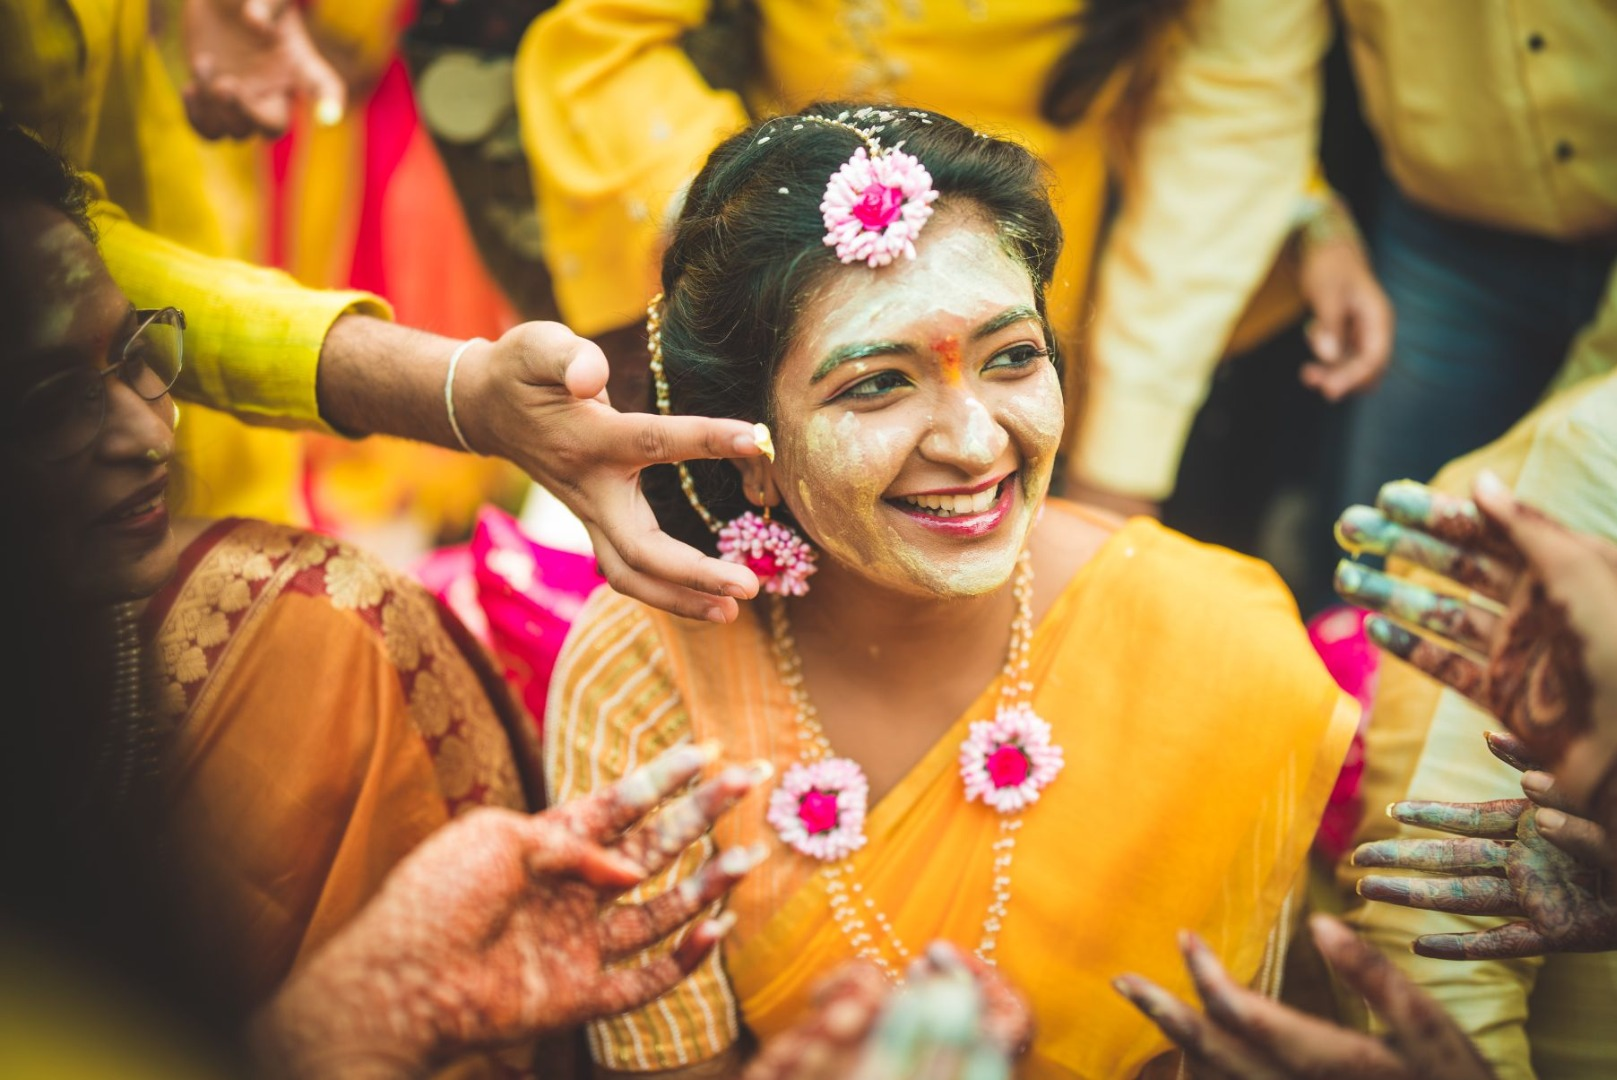 Bride During Haldi Ceremony in Yellow Outfit and Pink Floral Jewellery